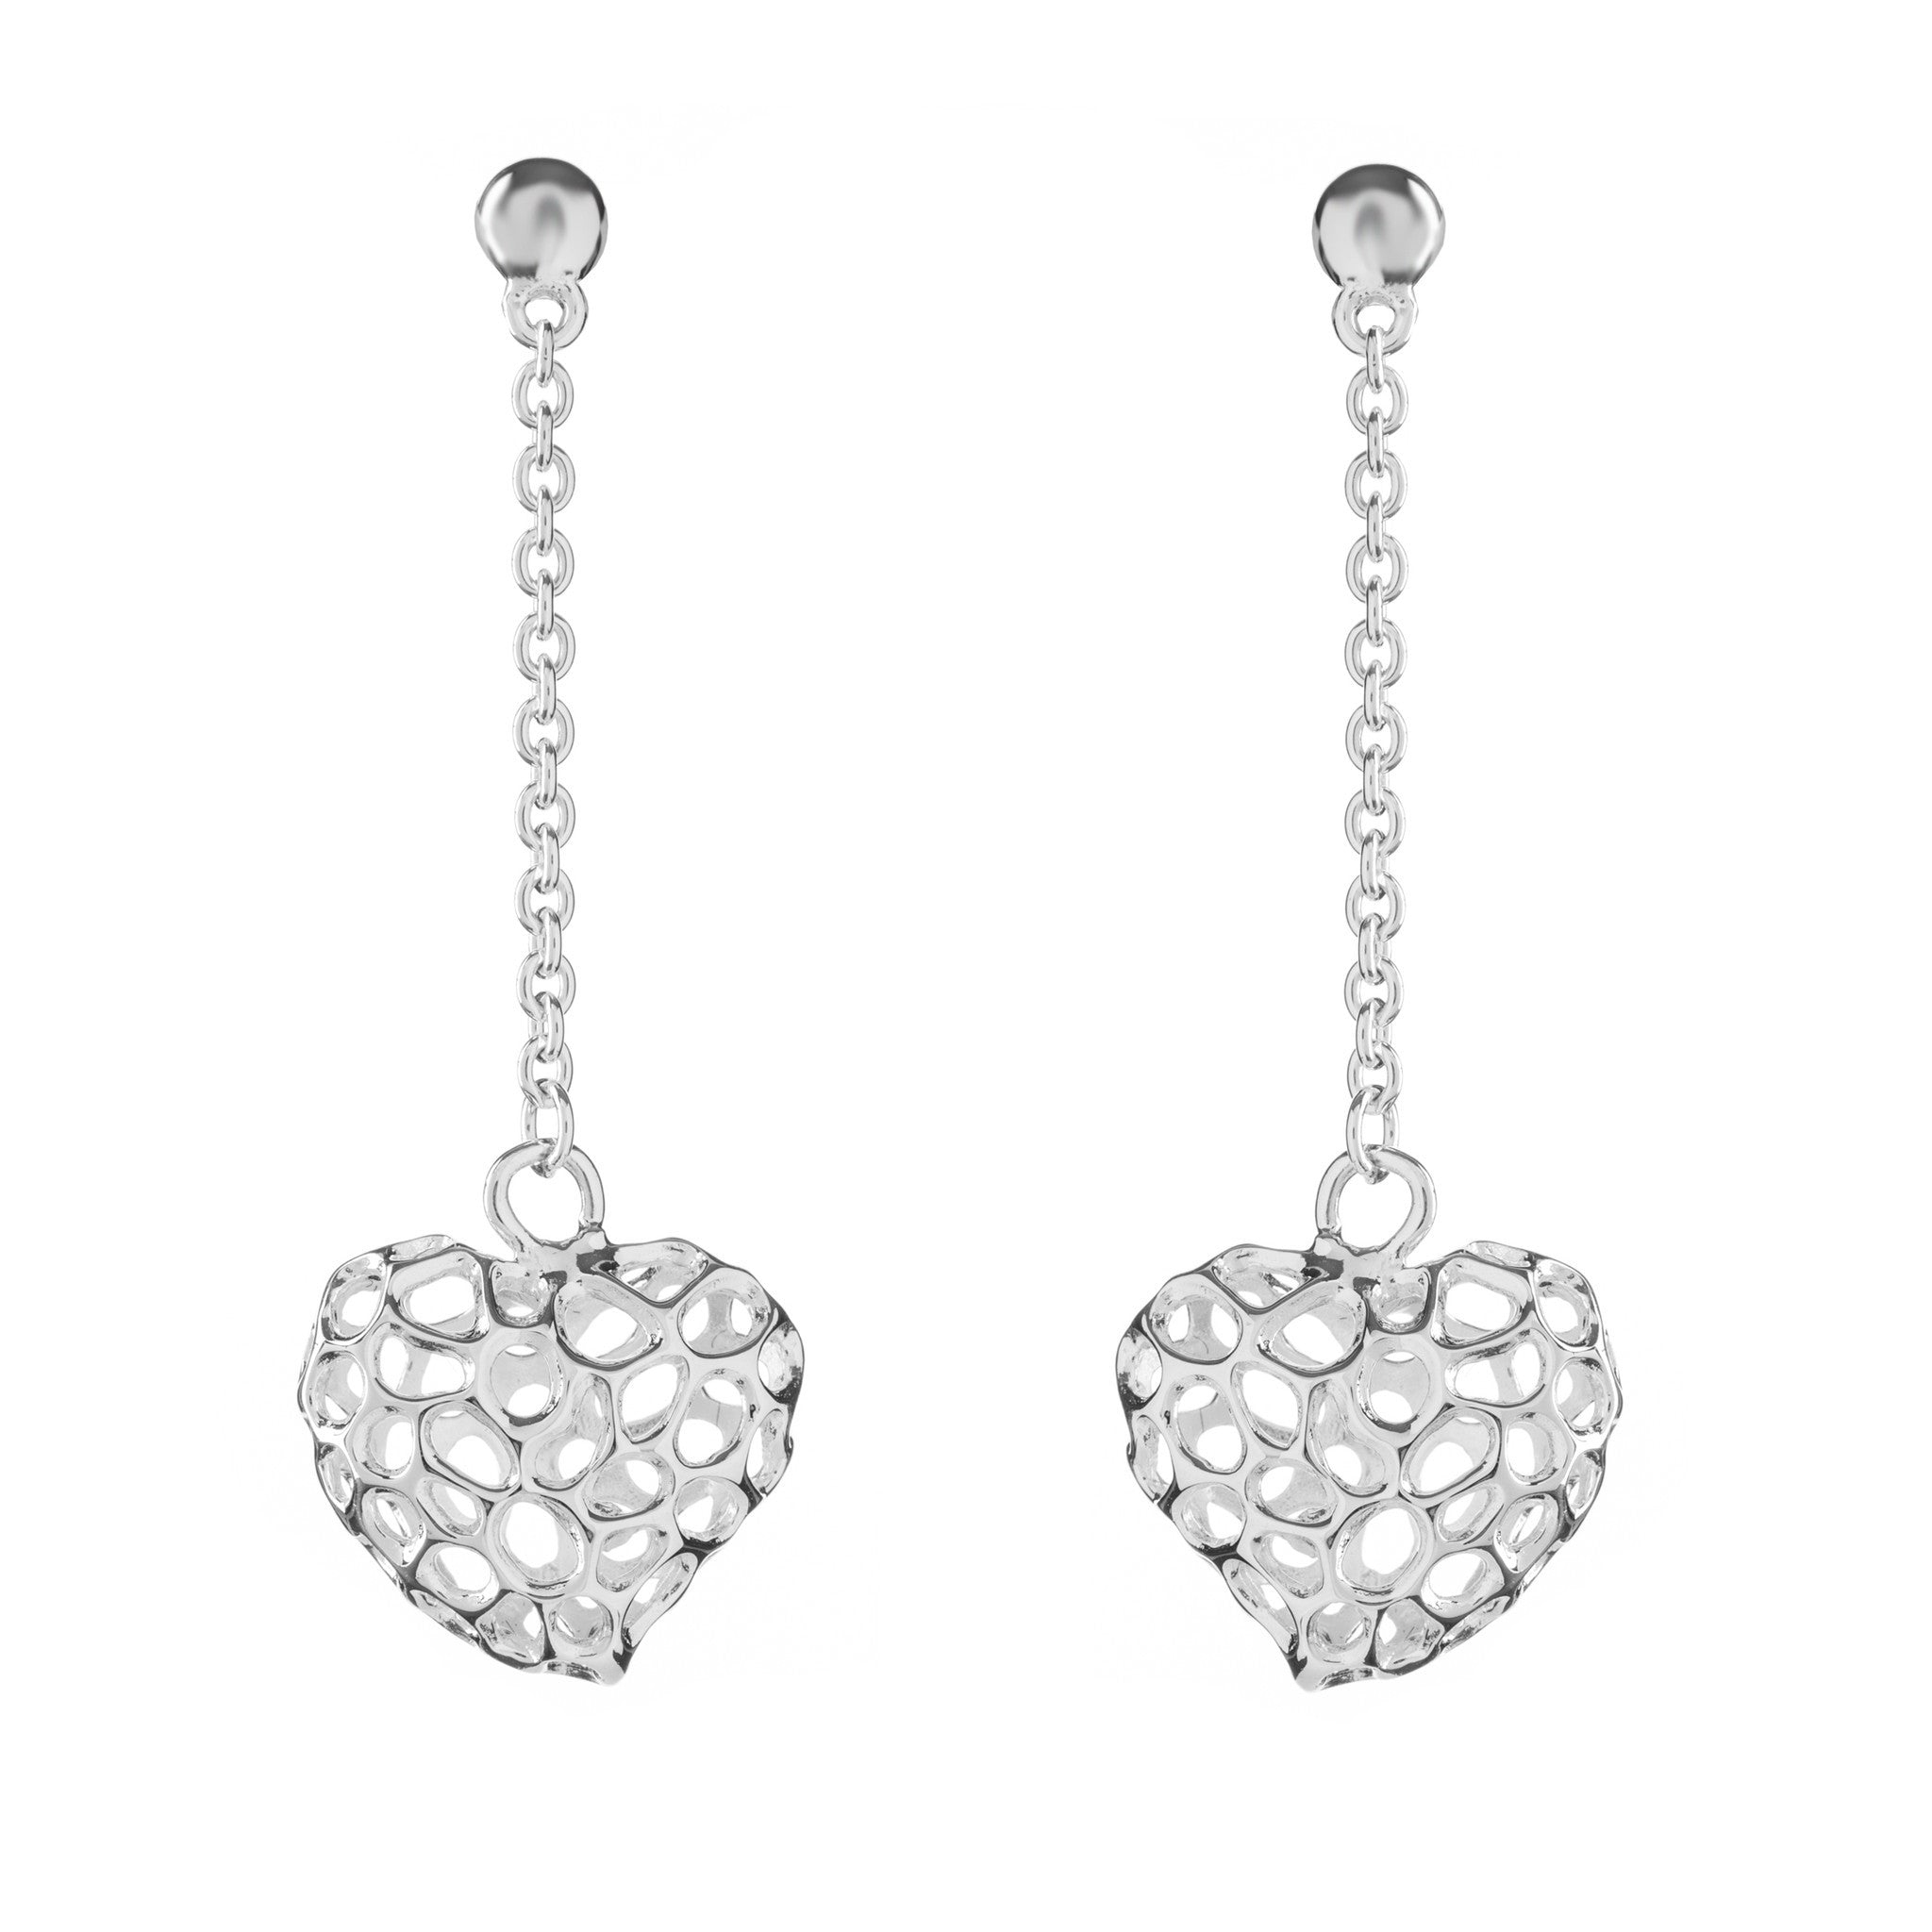 Rachel Galley Earrings Amore Heart Lattice Drop Silver